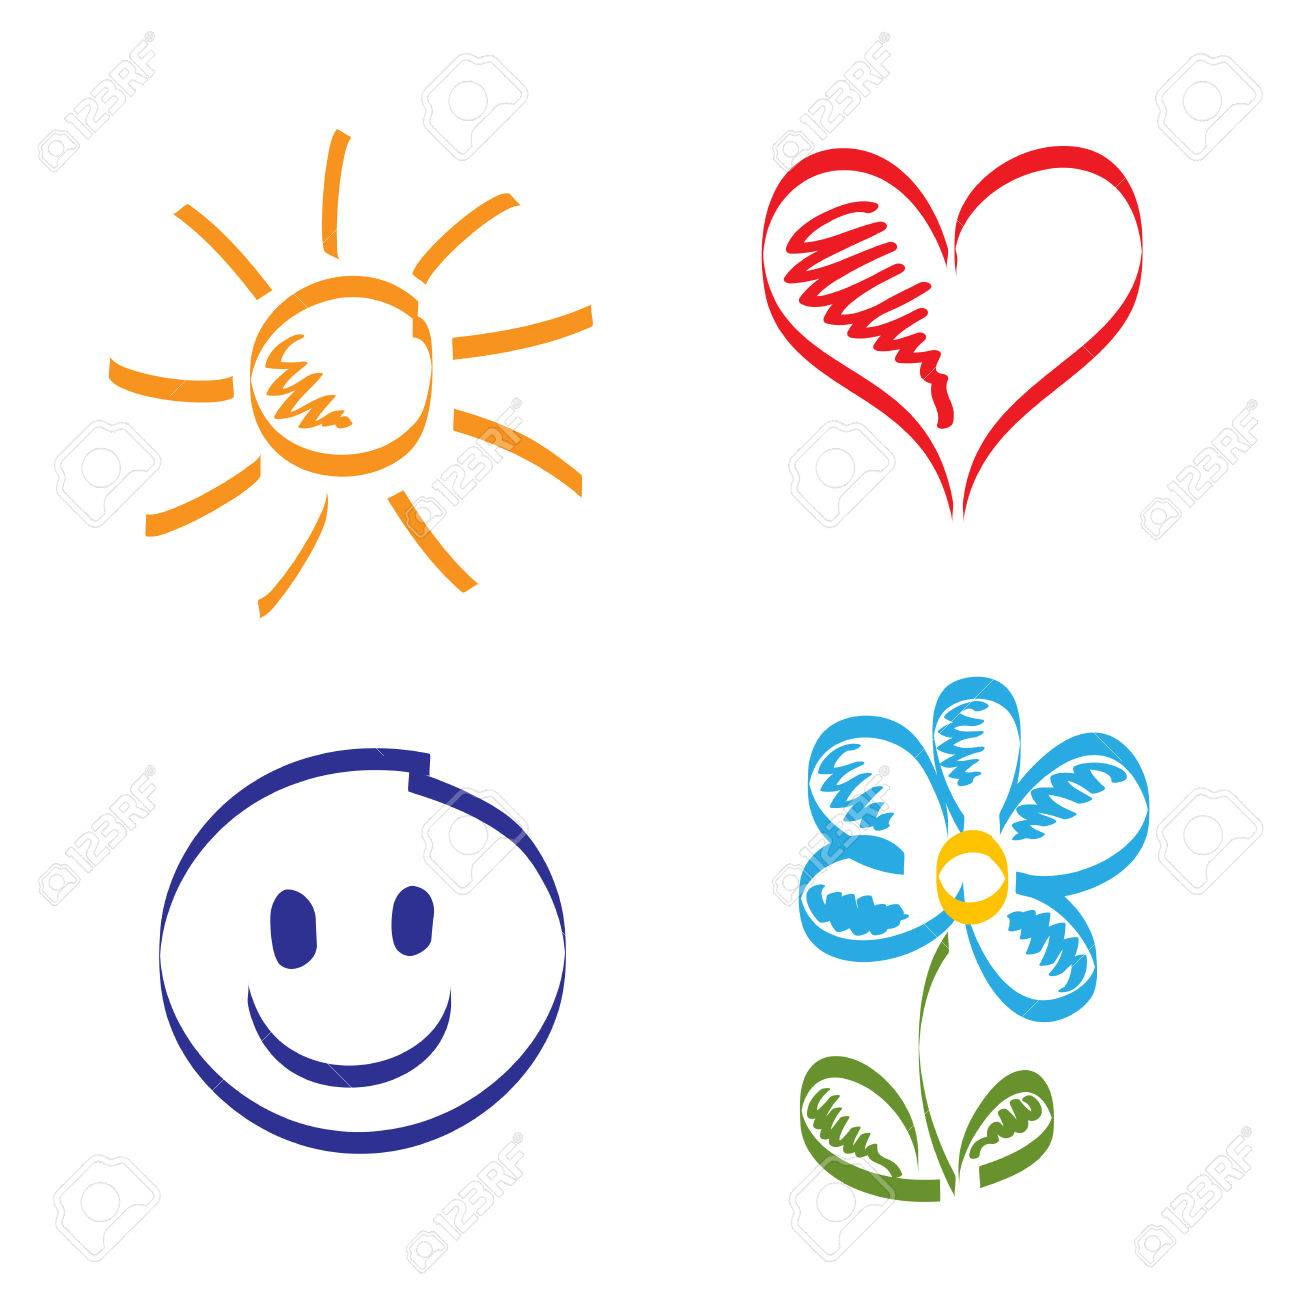 hand drawn of sun heart smile and flower royalty free cliparts rh 123rf com Free Vector Textures Free Sun Graphics